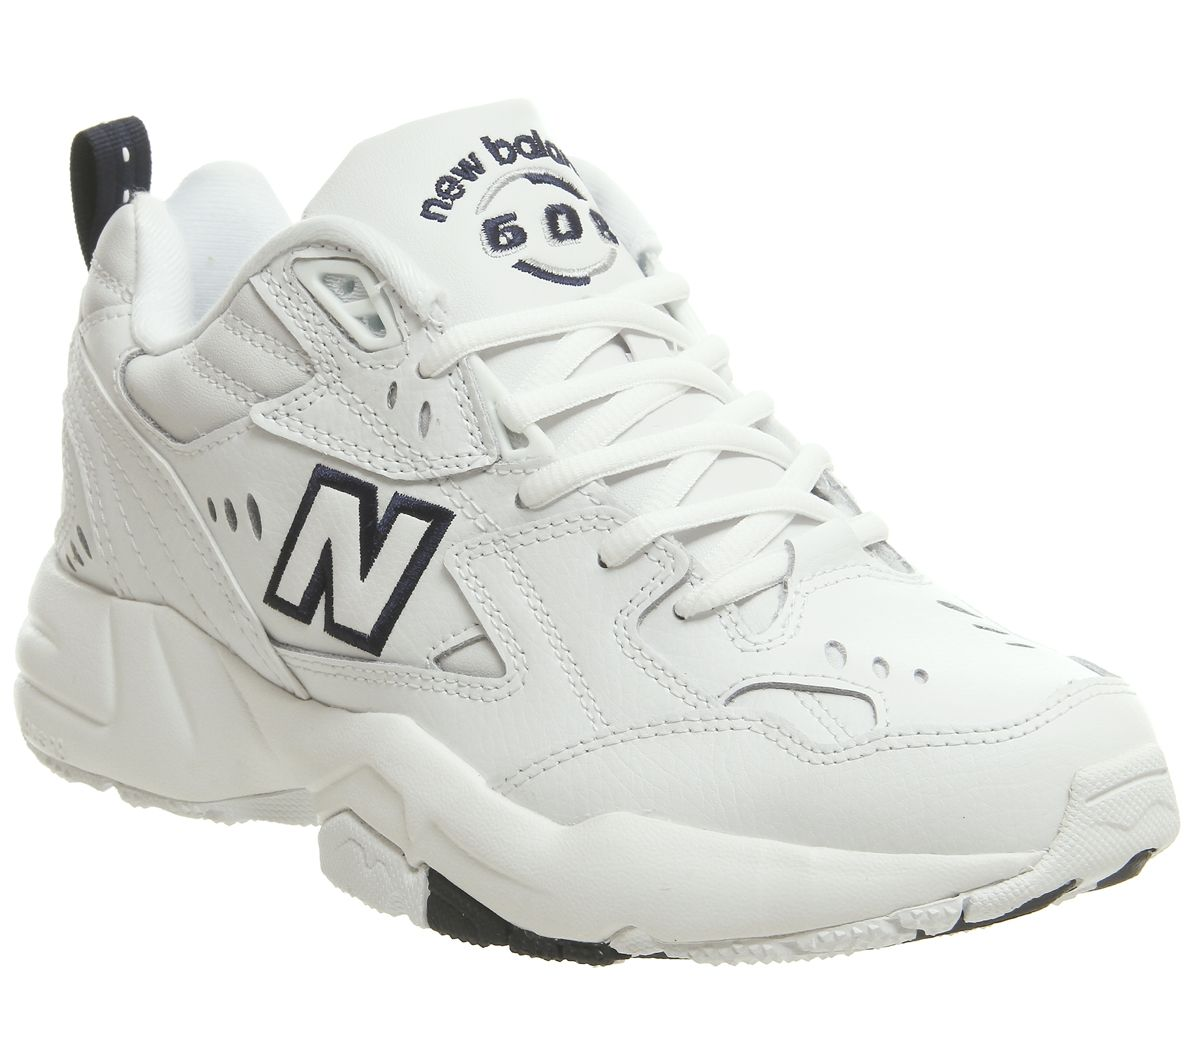 a01efd0651d8a New Balance 608 Trainers White Navy - Hers trainers